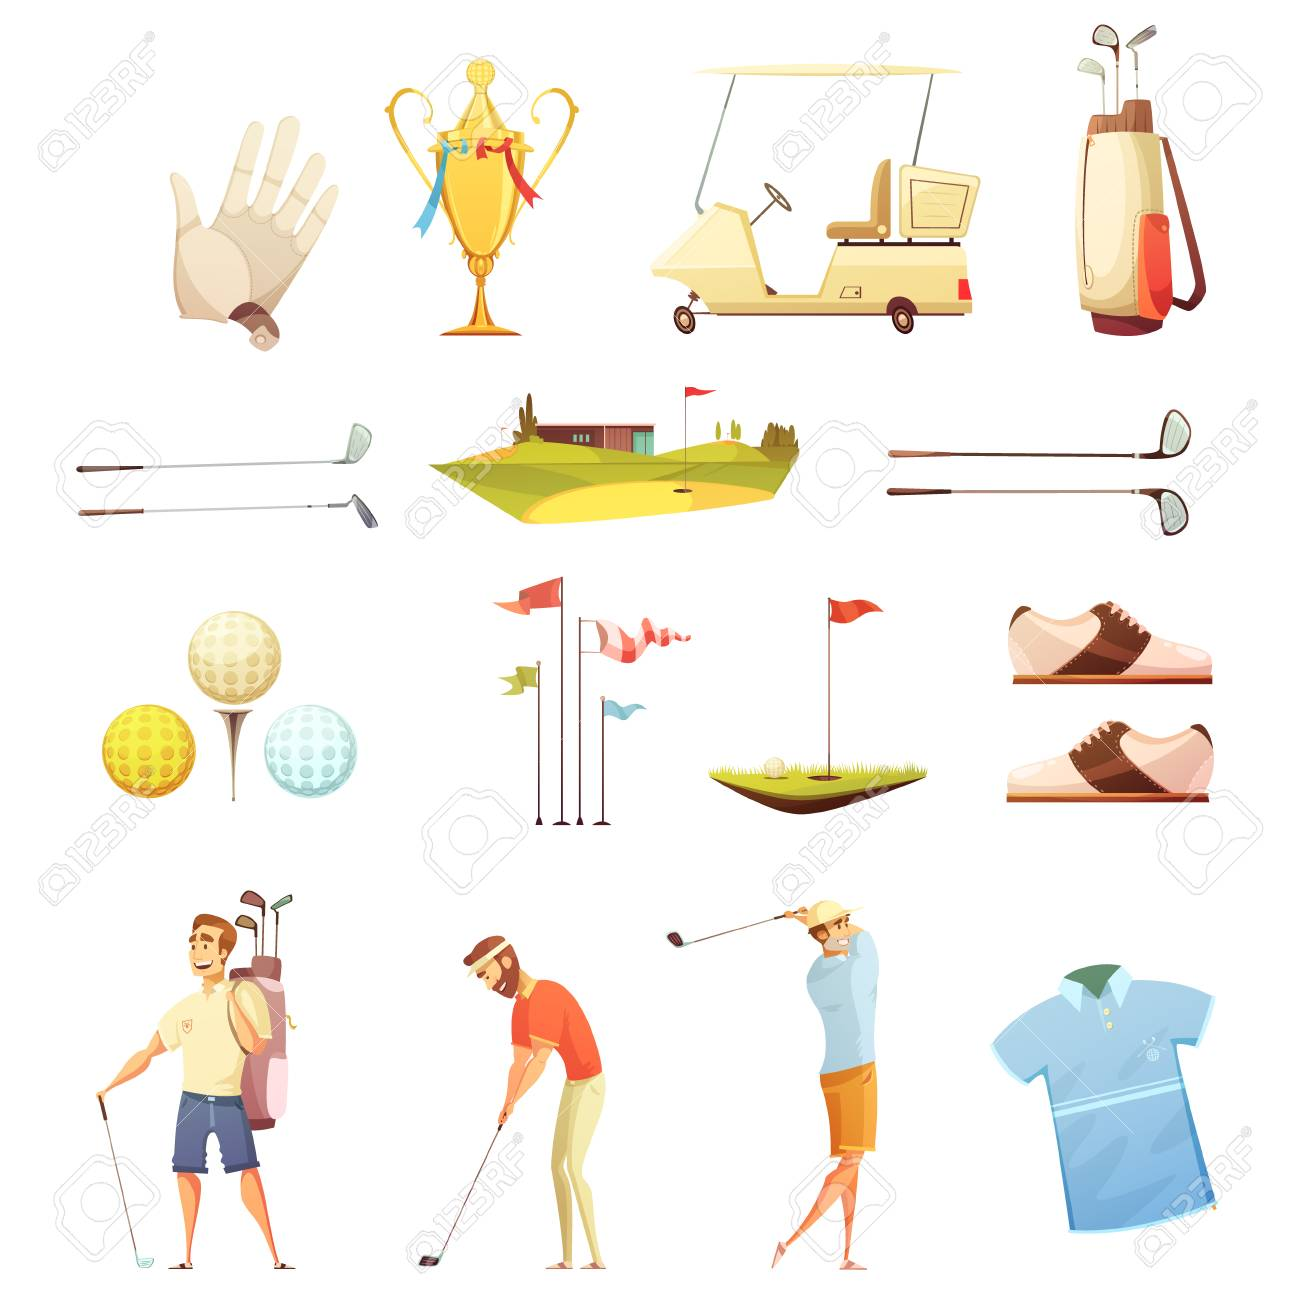 Golf Players And Accessories Retro Cartoon Icons Collection With Royalty Free Cliparts Vectors And Stock Illustration Image 67963487